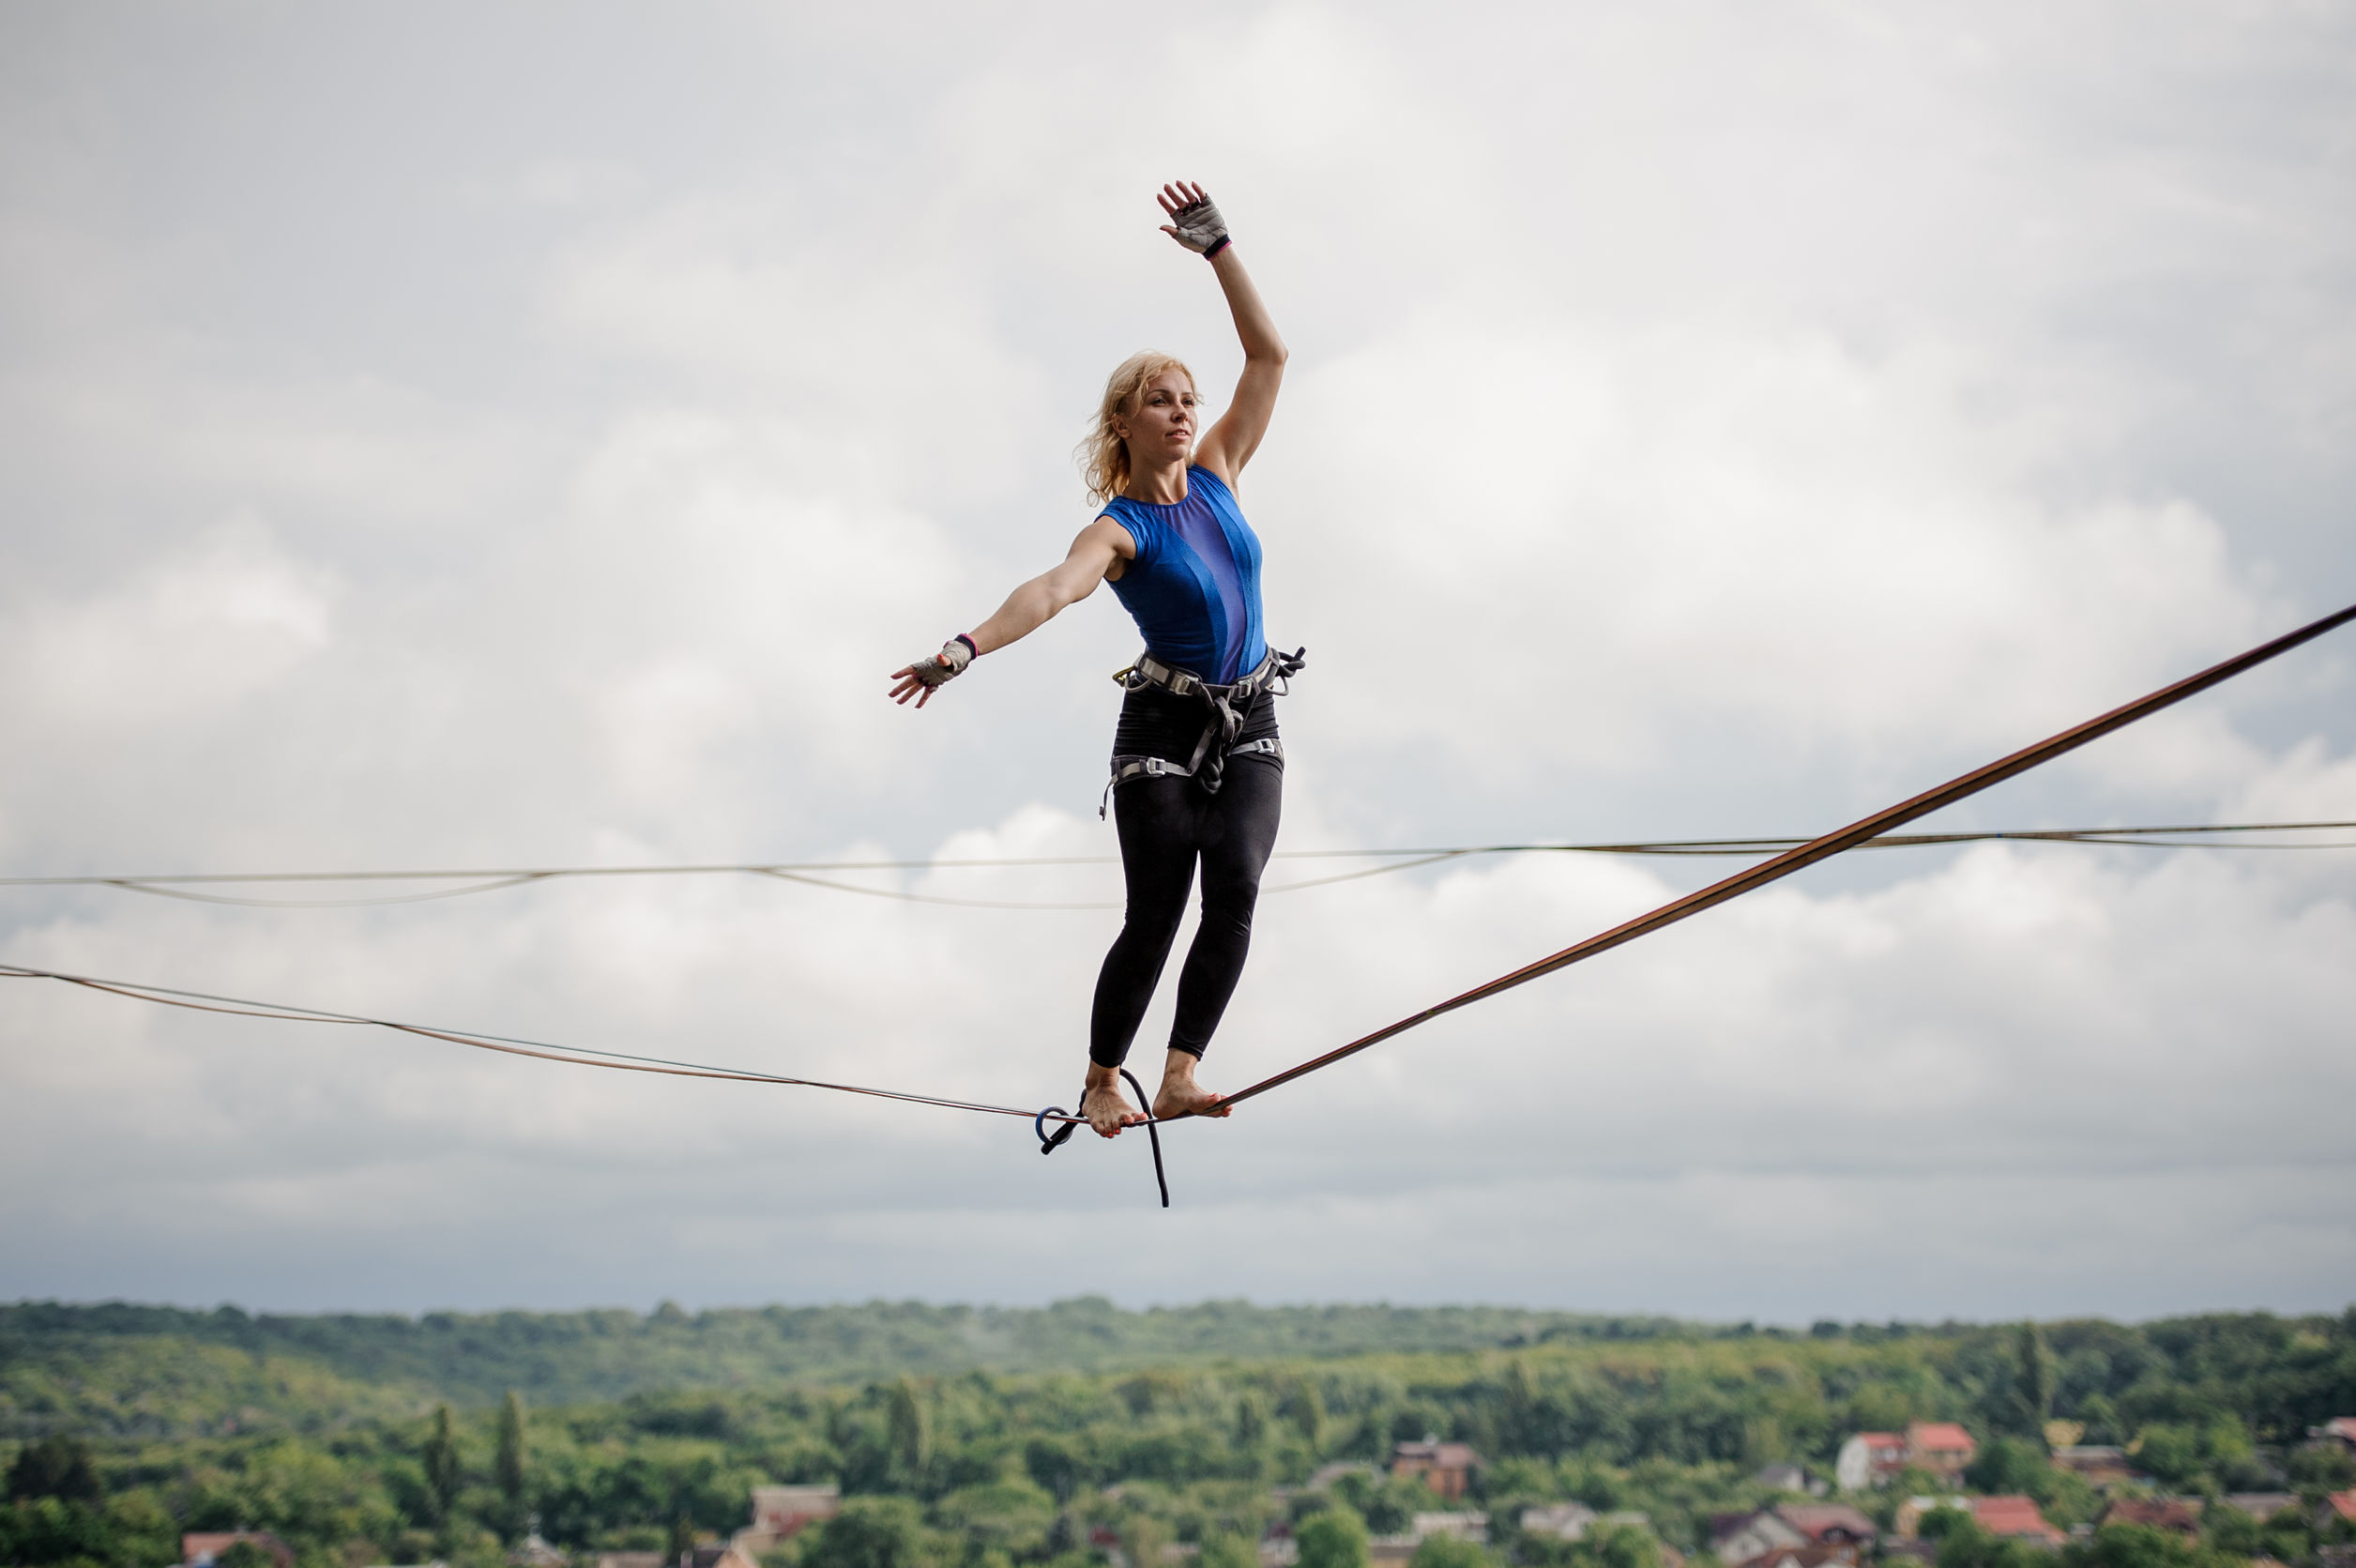 Young woman balancing tilted her hands in the right direction on the slackline